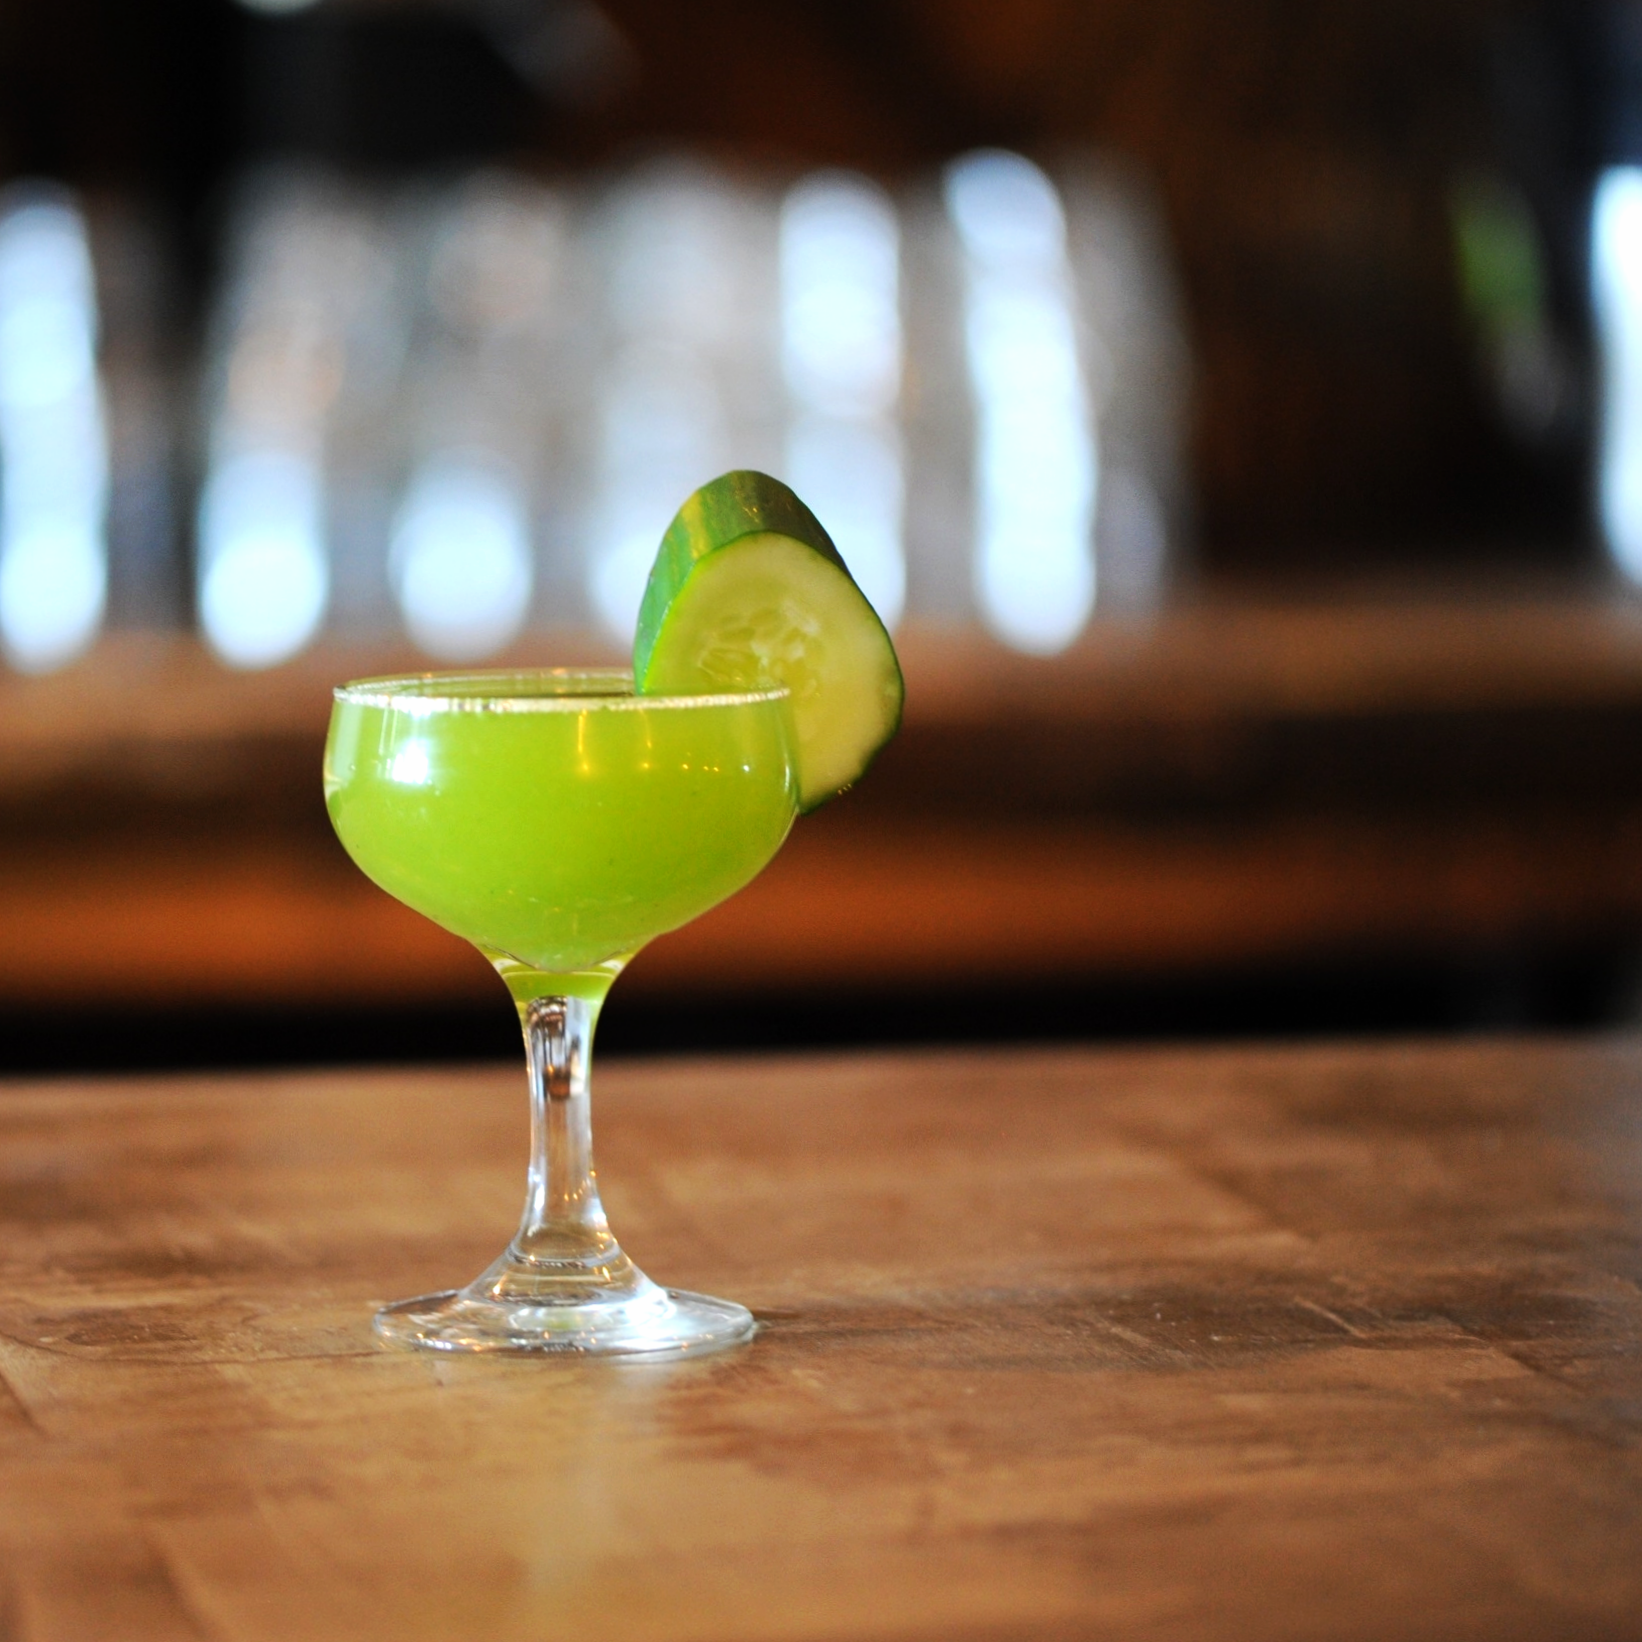 the-cocktail-experiment-syrups-celery-green-thumb